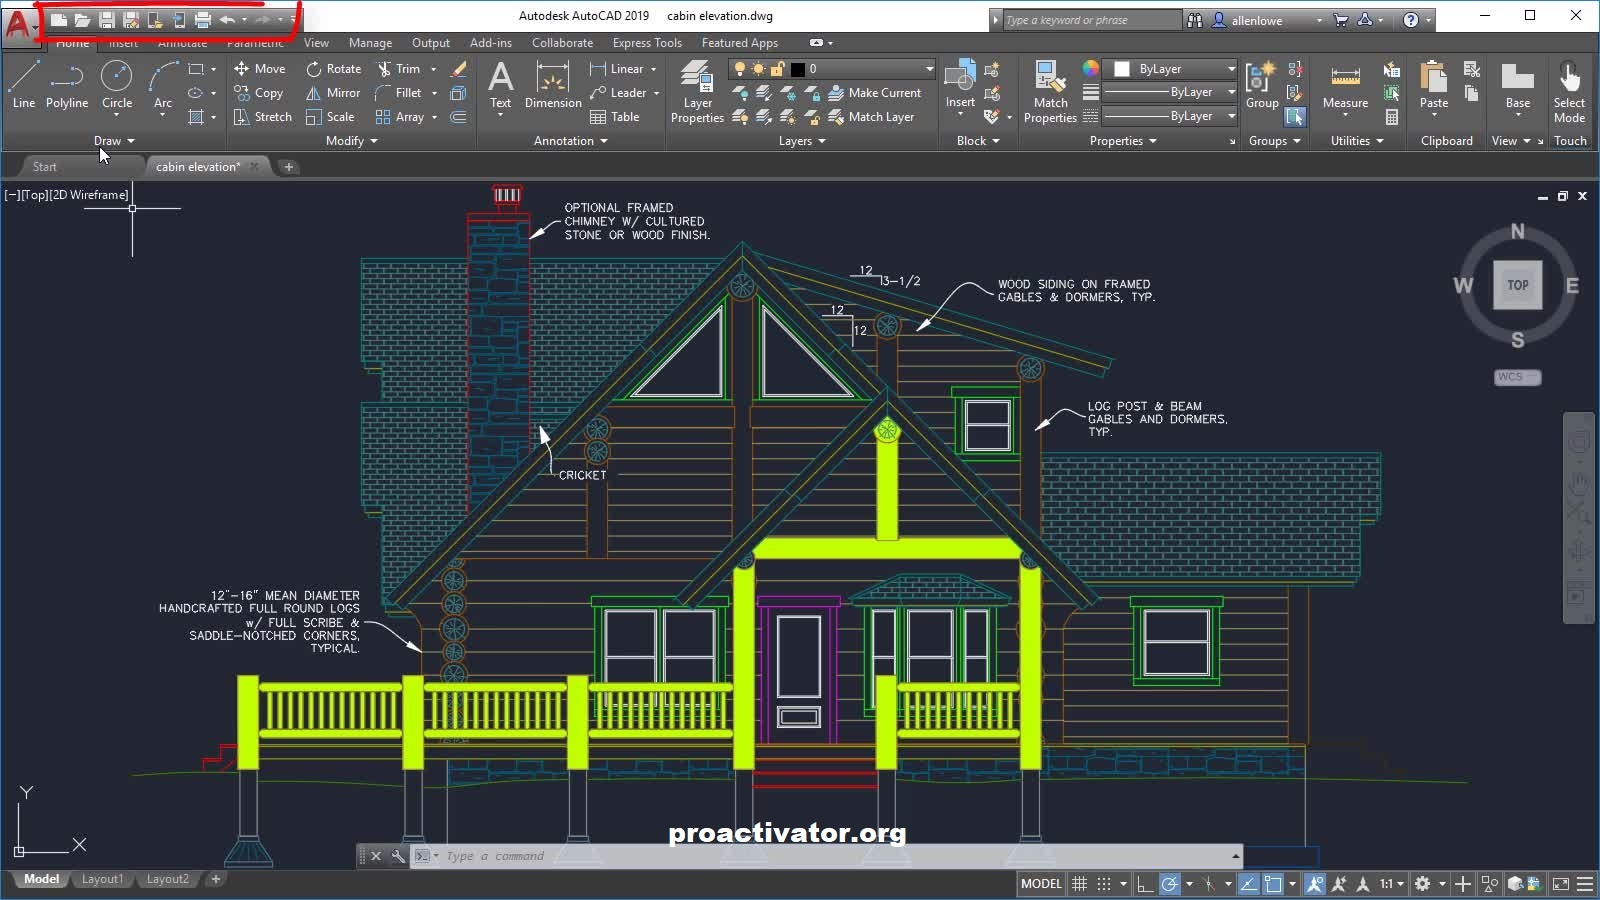 Autodesk Autocad V2021.2 With Crack Free Download